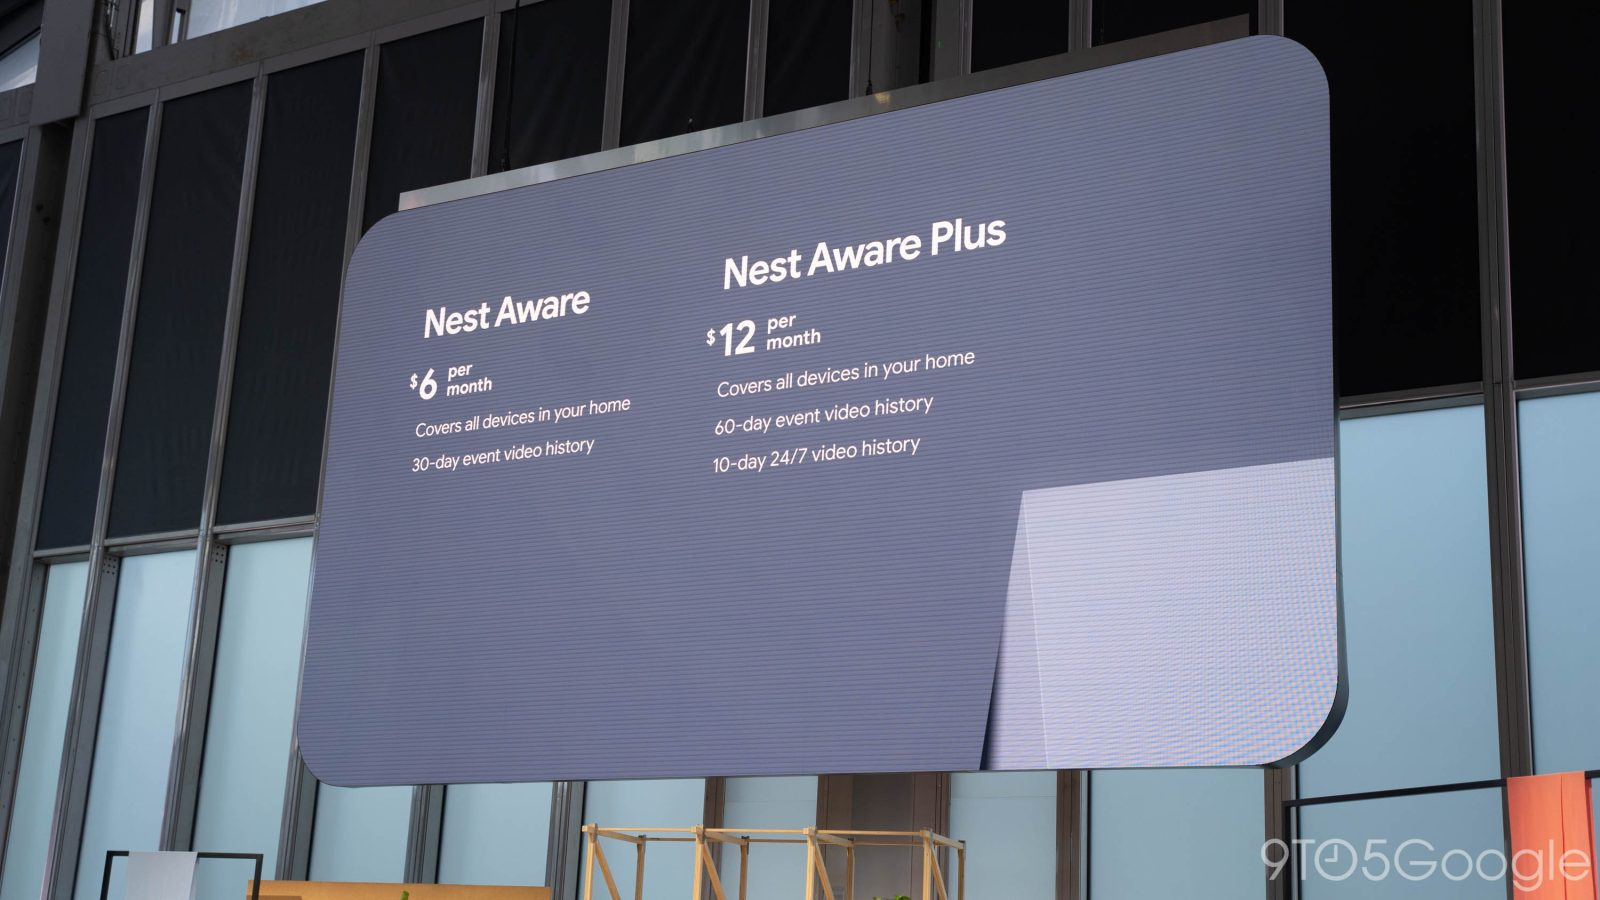 Nest Aware now uses a flat pricing structure, includes all your devices for $6